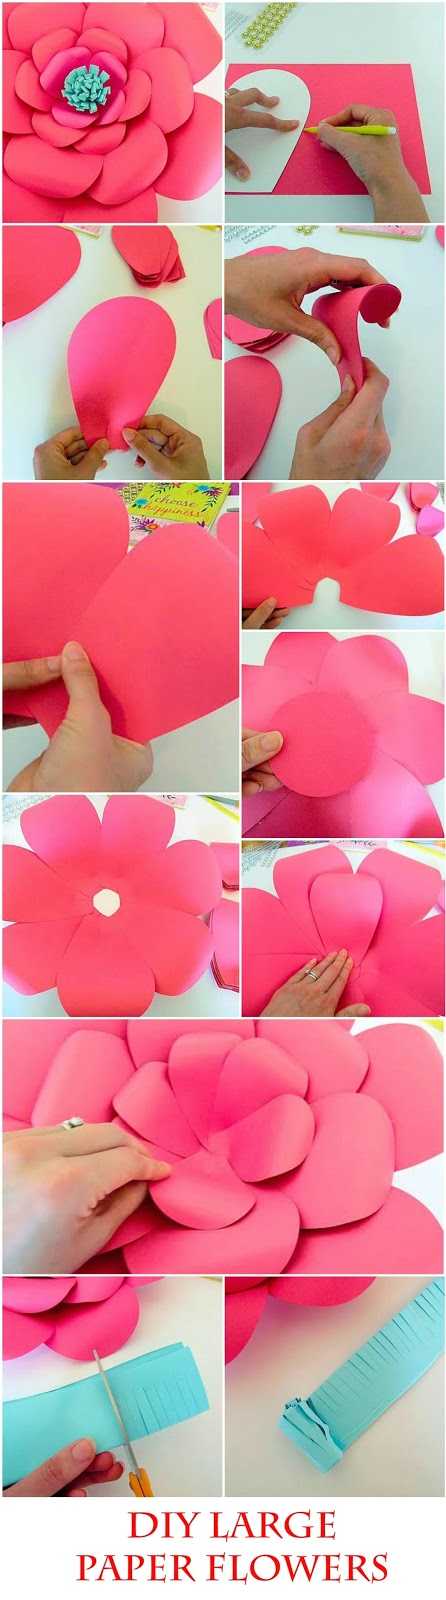 How to make paper flowers how to make paper flowers 10 mightylinksfo